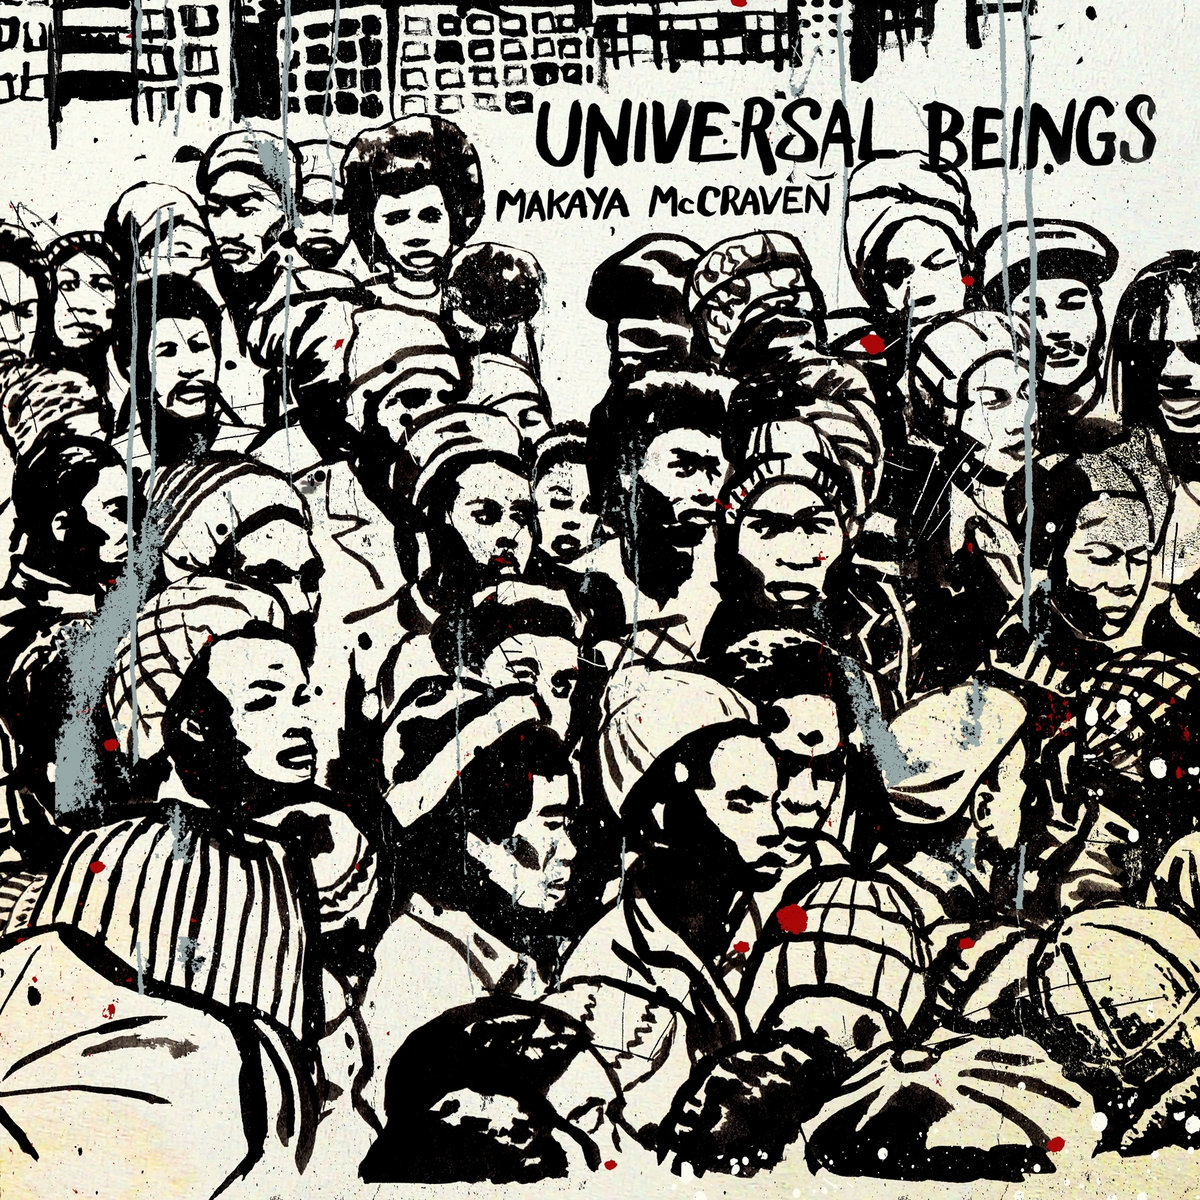 makaya mccraven-universal beings